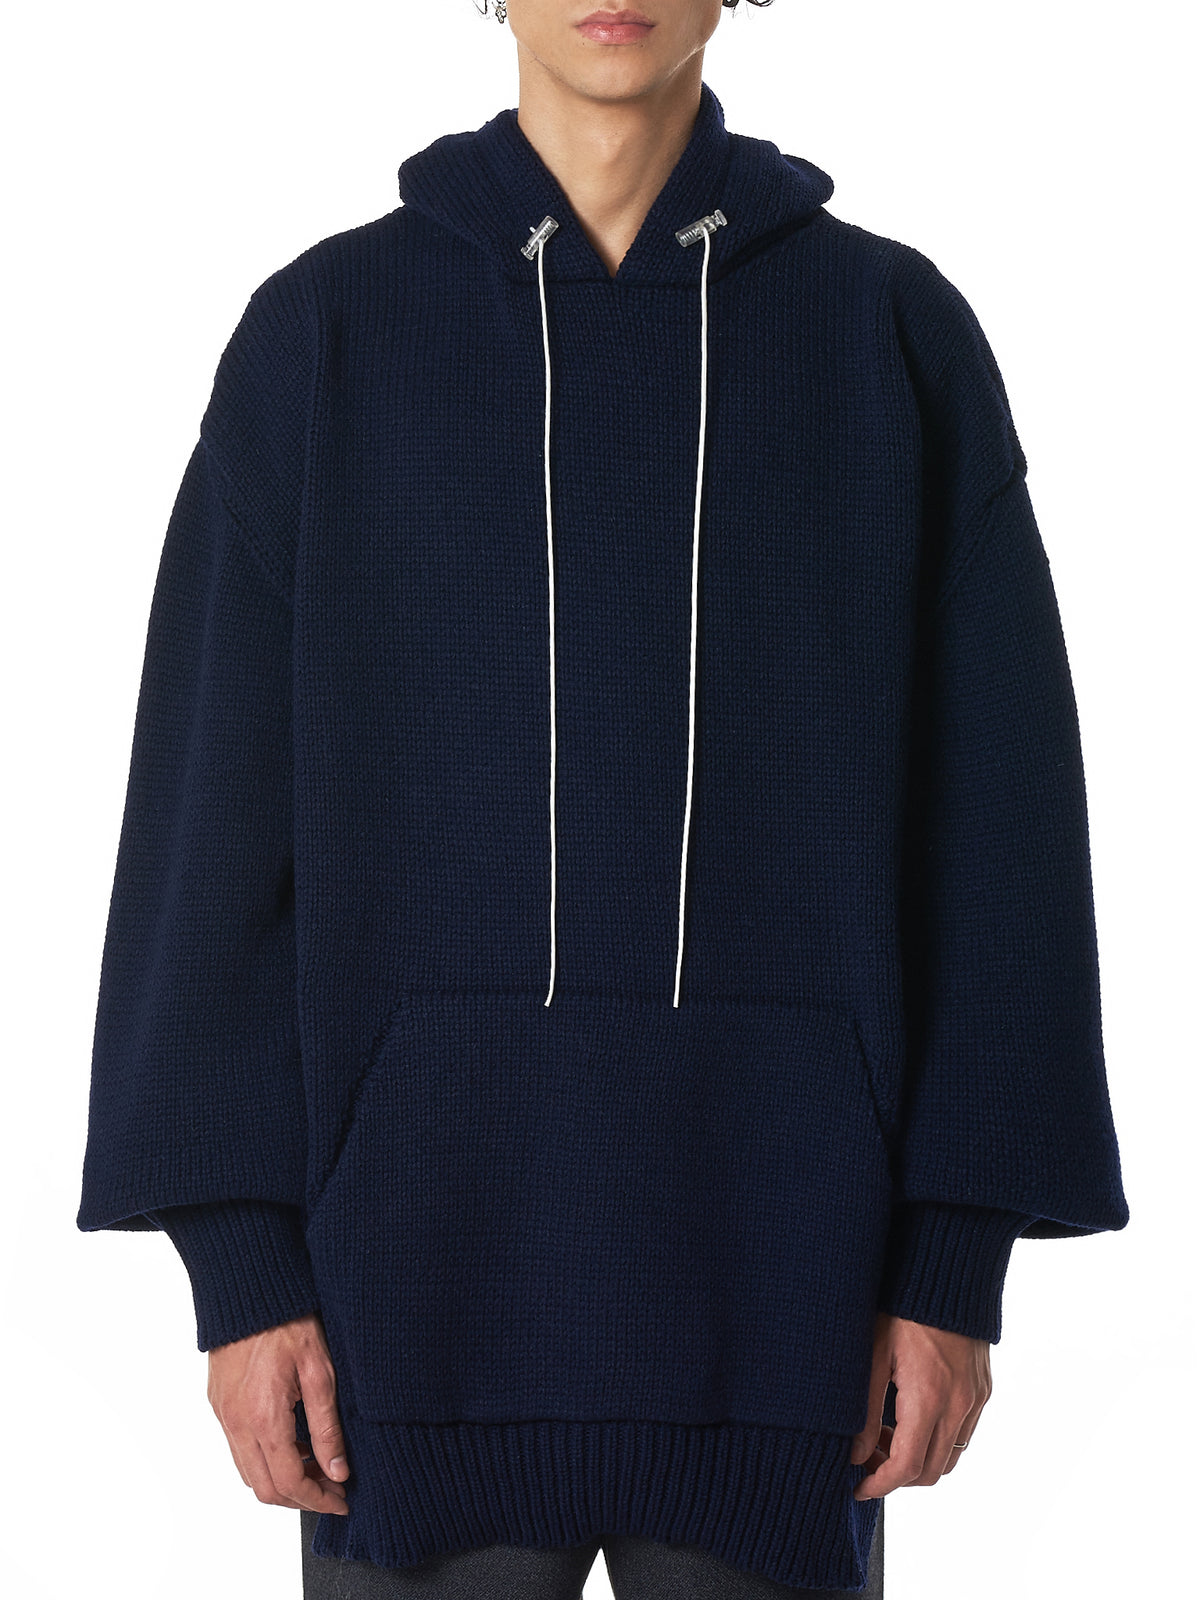 Camiel Fortgens Hoodie - Hlorenzo front